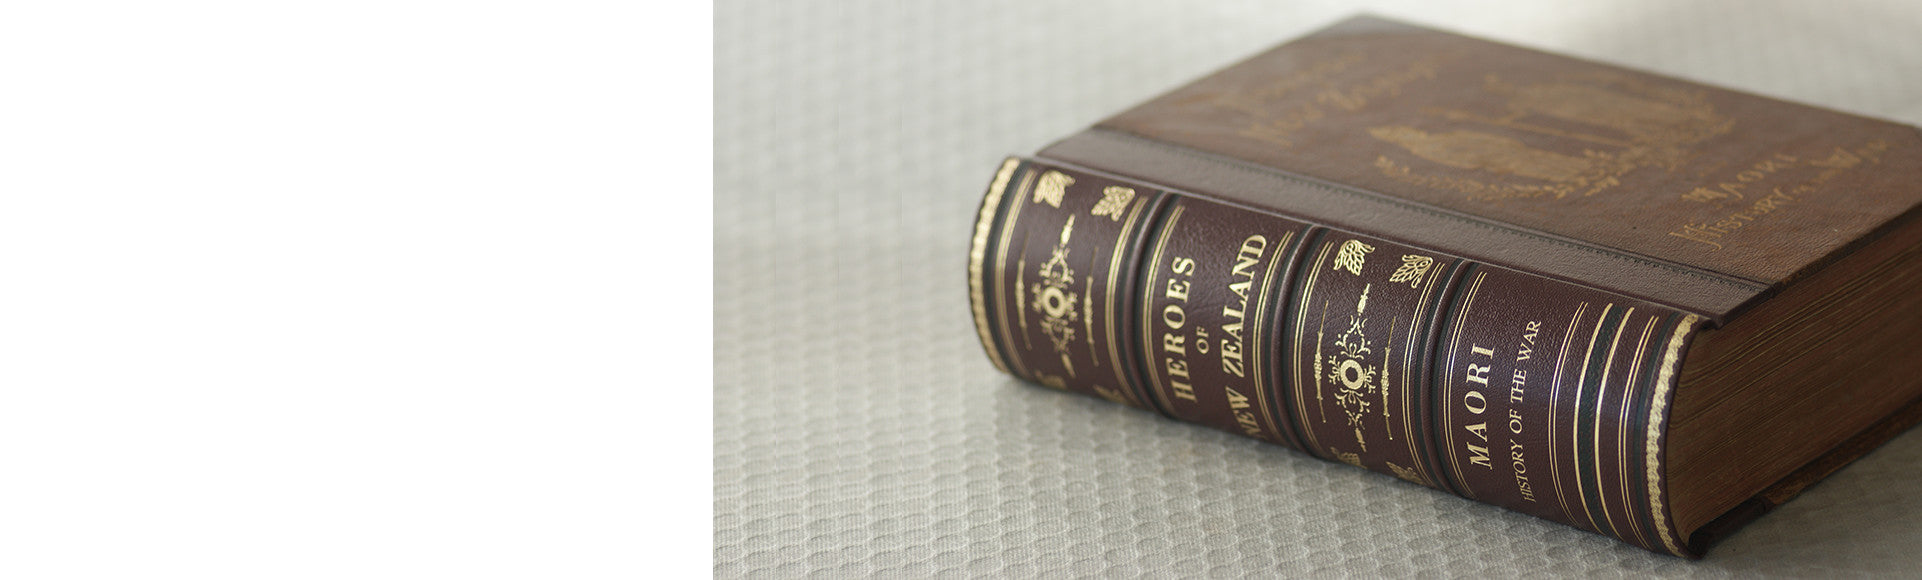 Heroes of New Zealand - Book Restoration by The Bookbindery, specially showing spine decoration